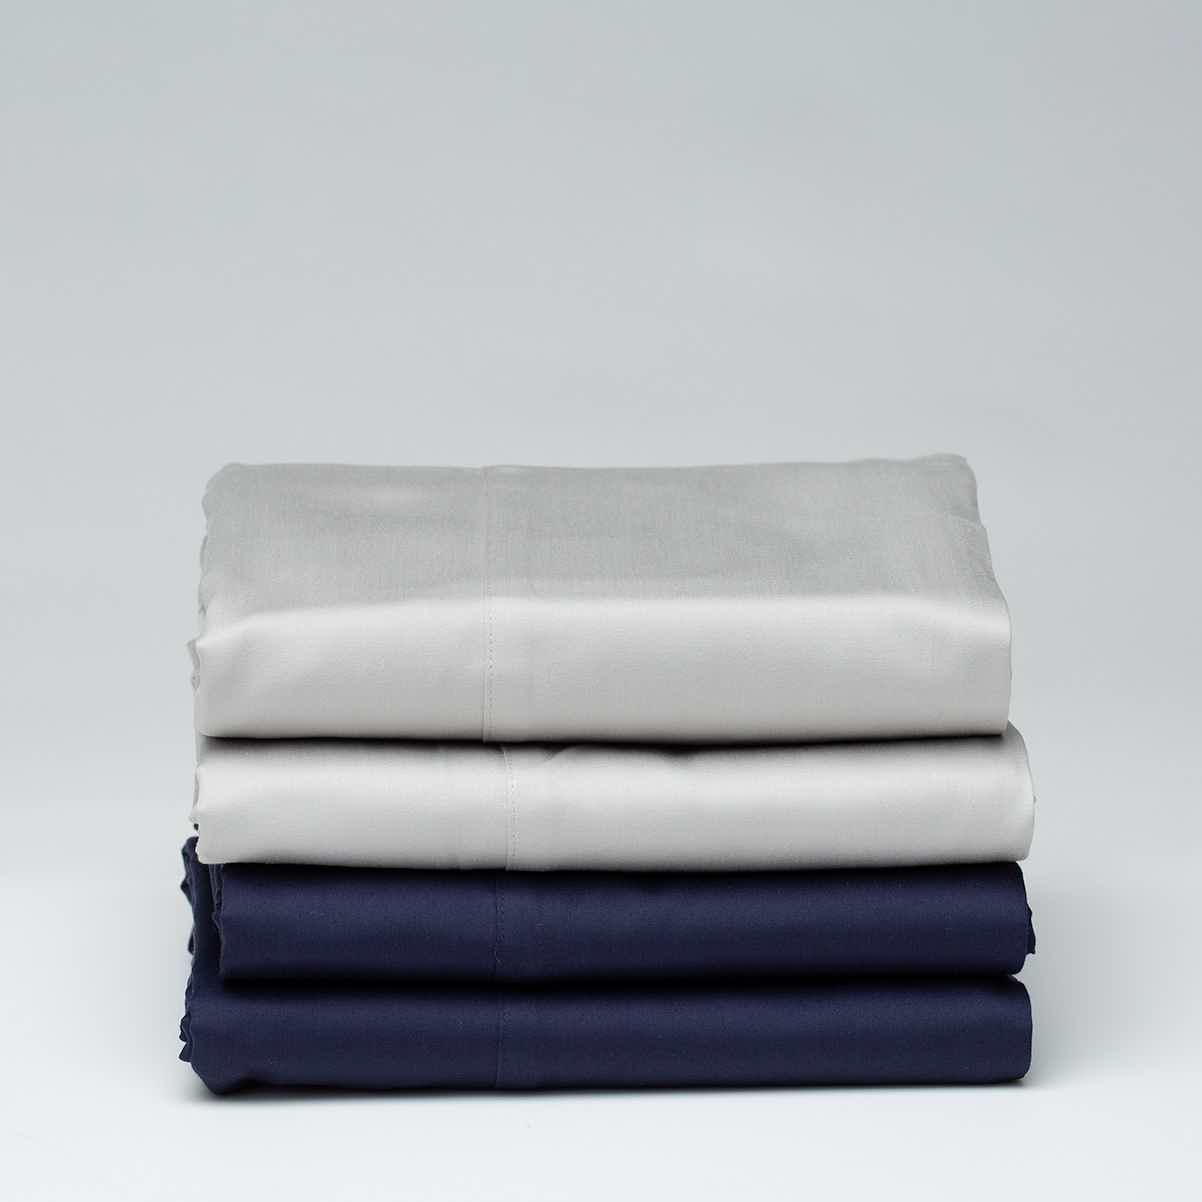 light gray and navy folded organic sheets